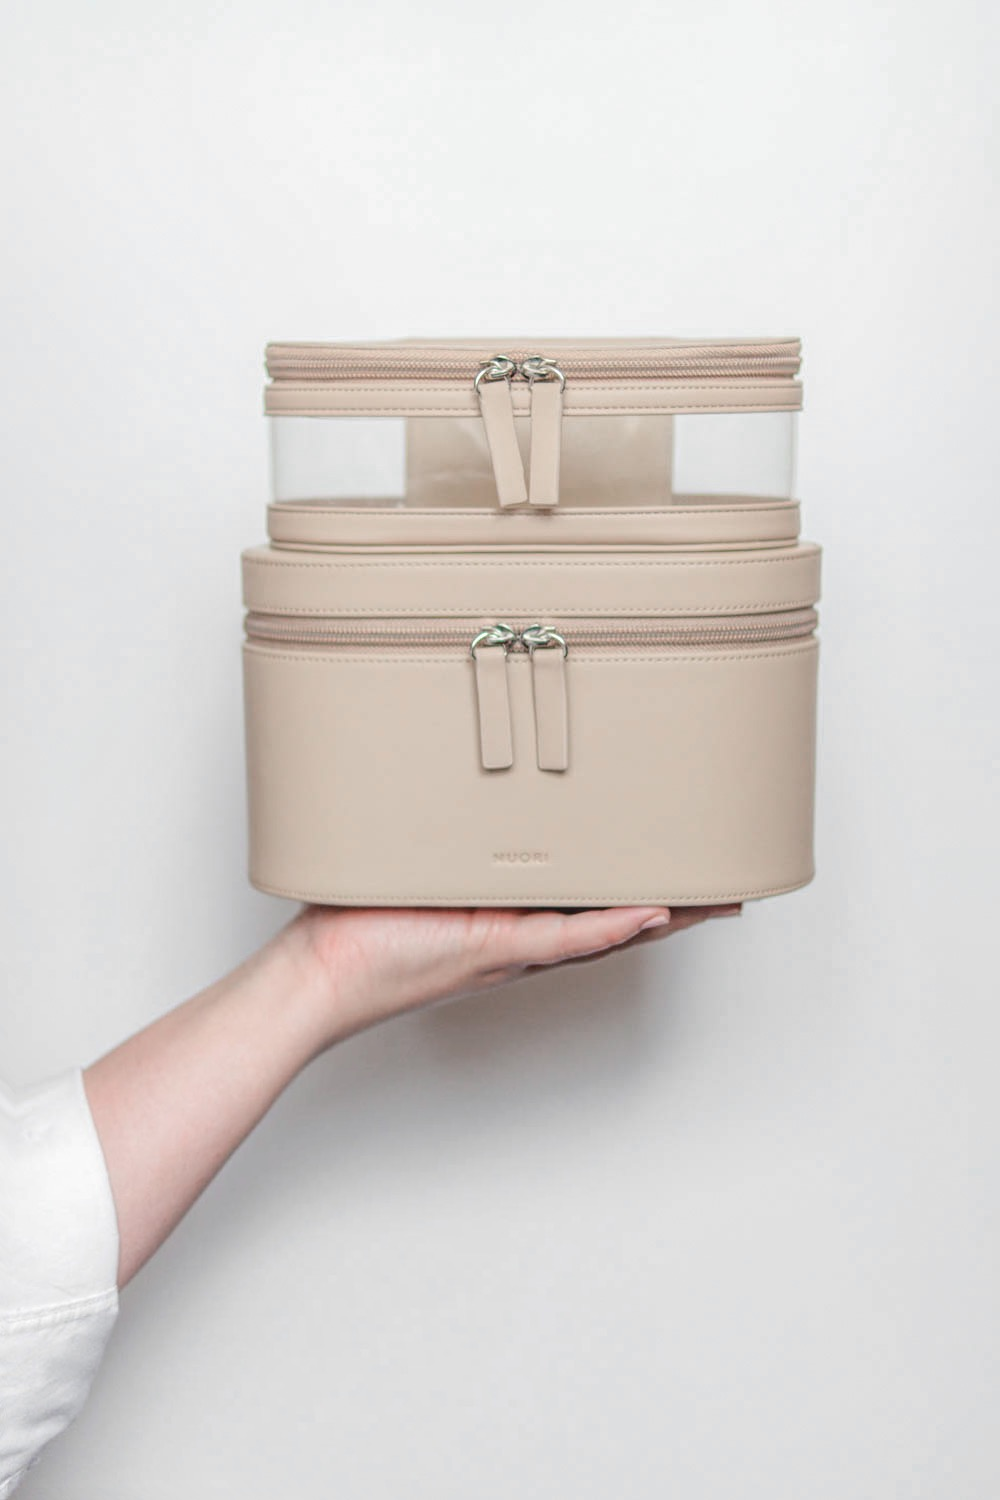 Nuori-Accessories-Getaway-Travel-Case-Neutral-Review